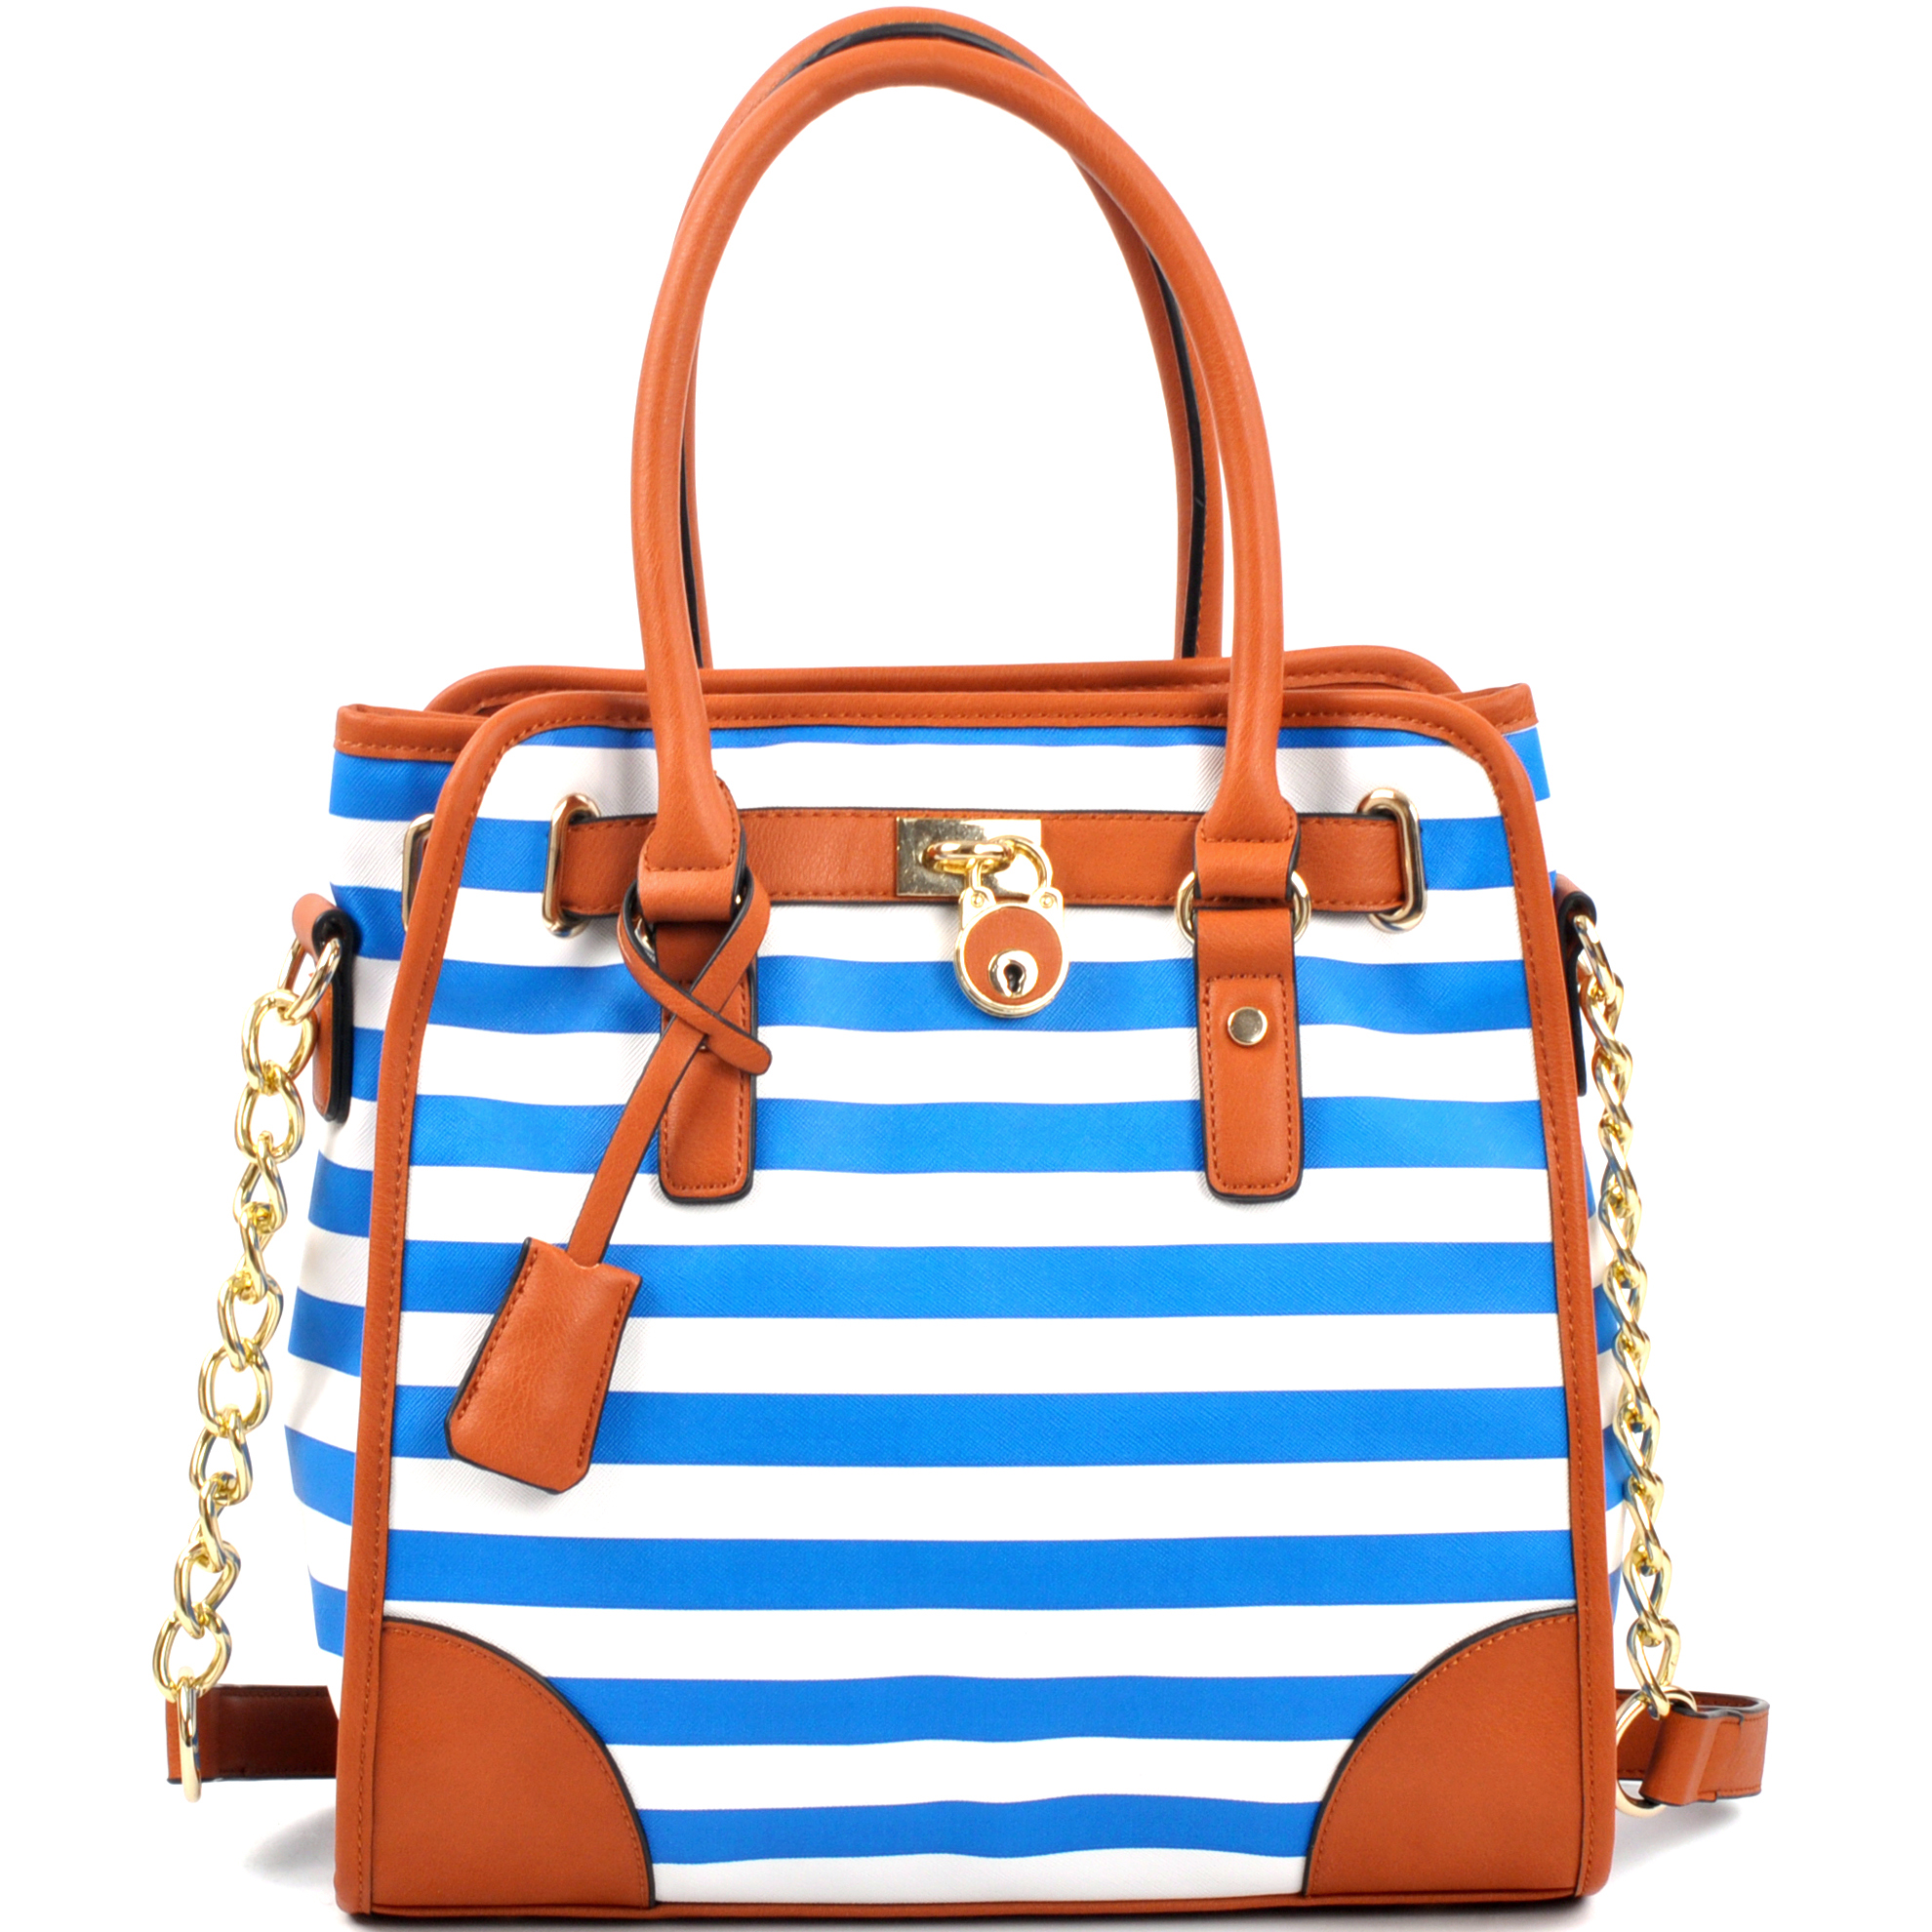 Medium Striped Satchel with Chain Shoulder Strap